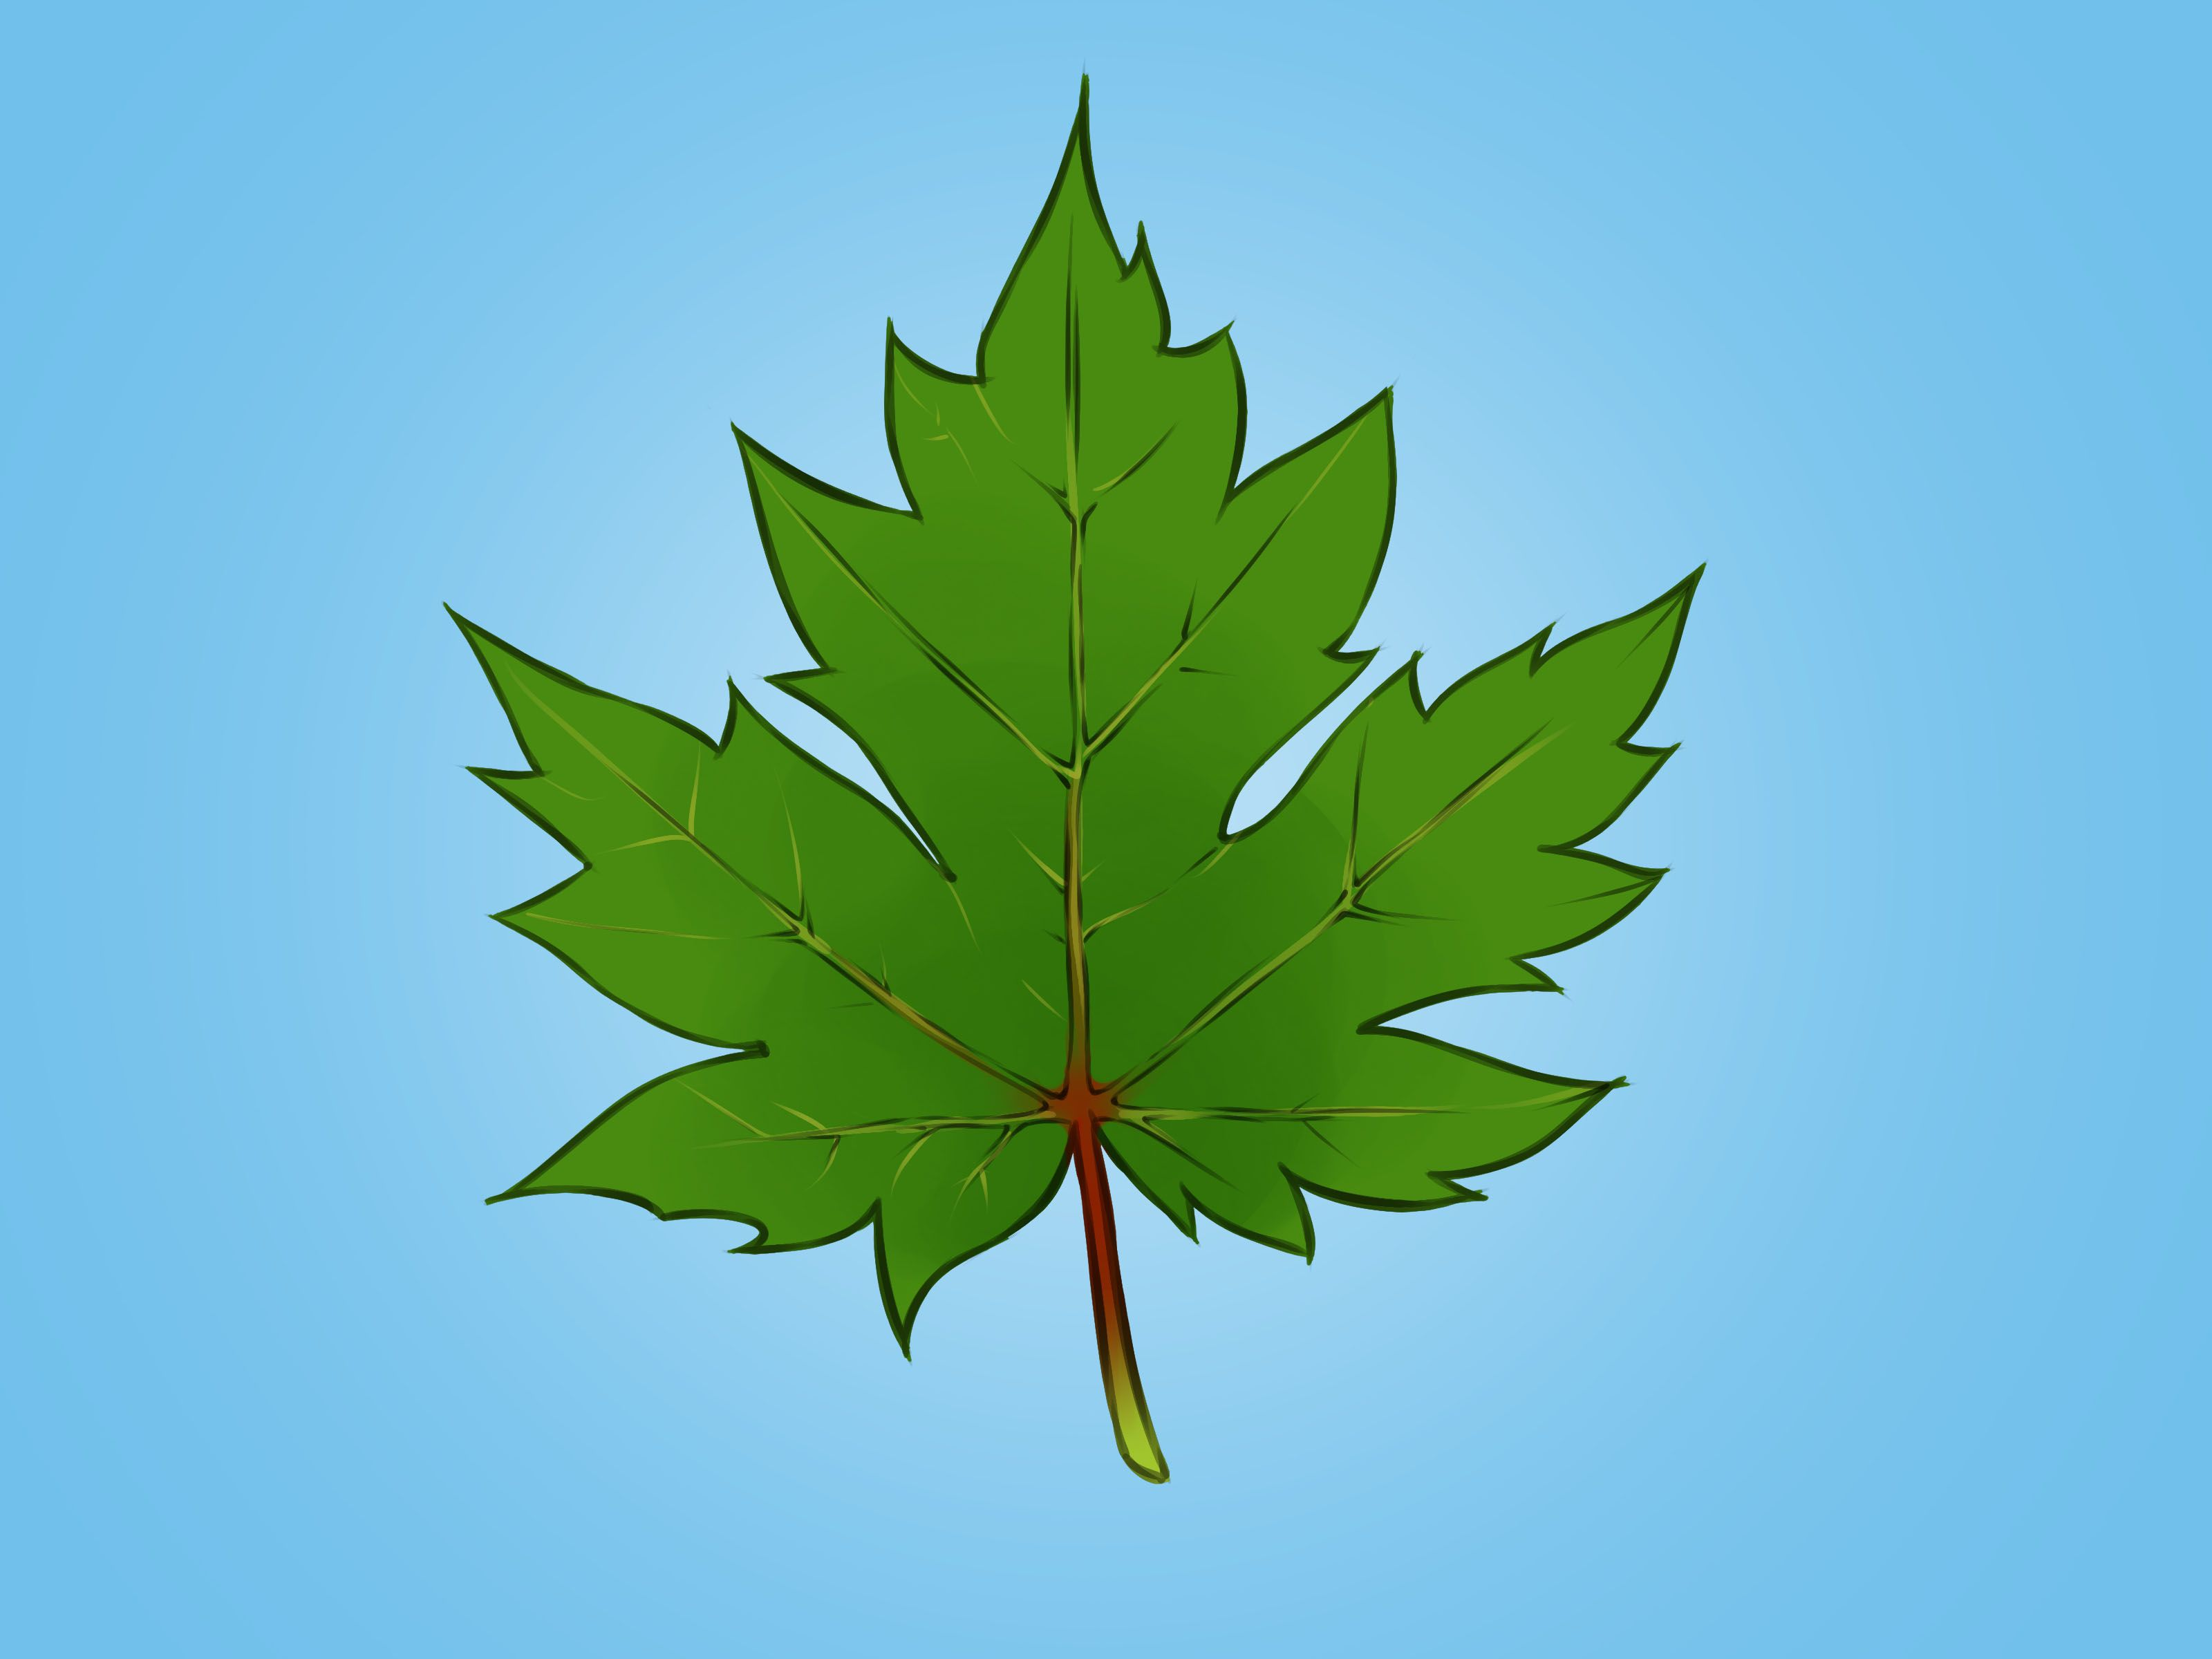 How To Draw A Maple Leaf Drawings Maple Leaf Plant Leaves